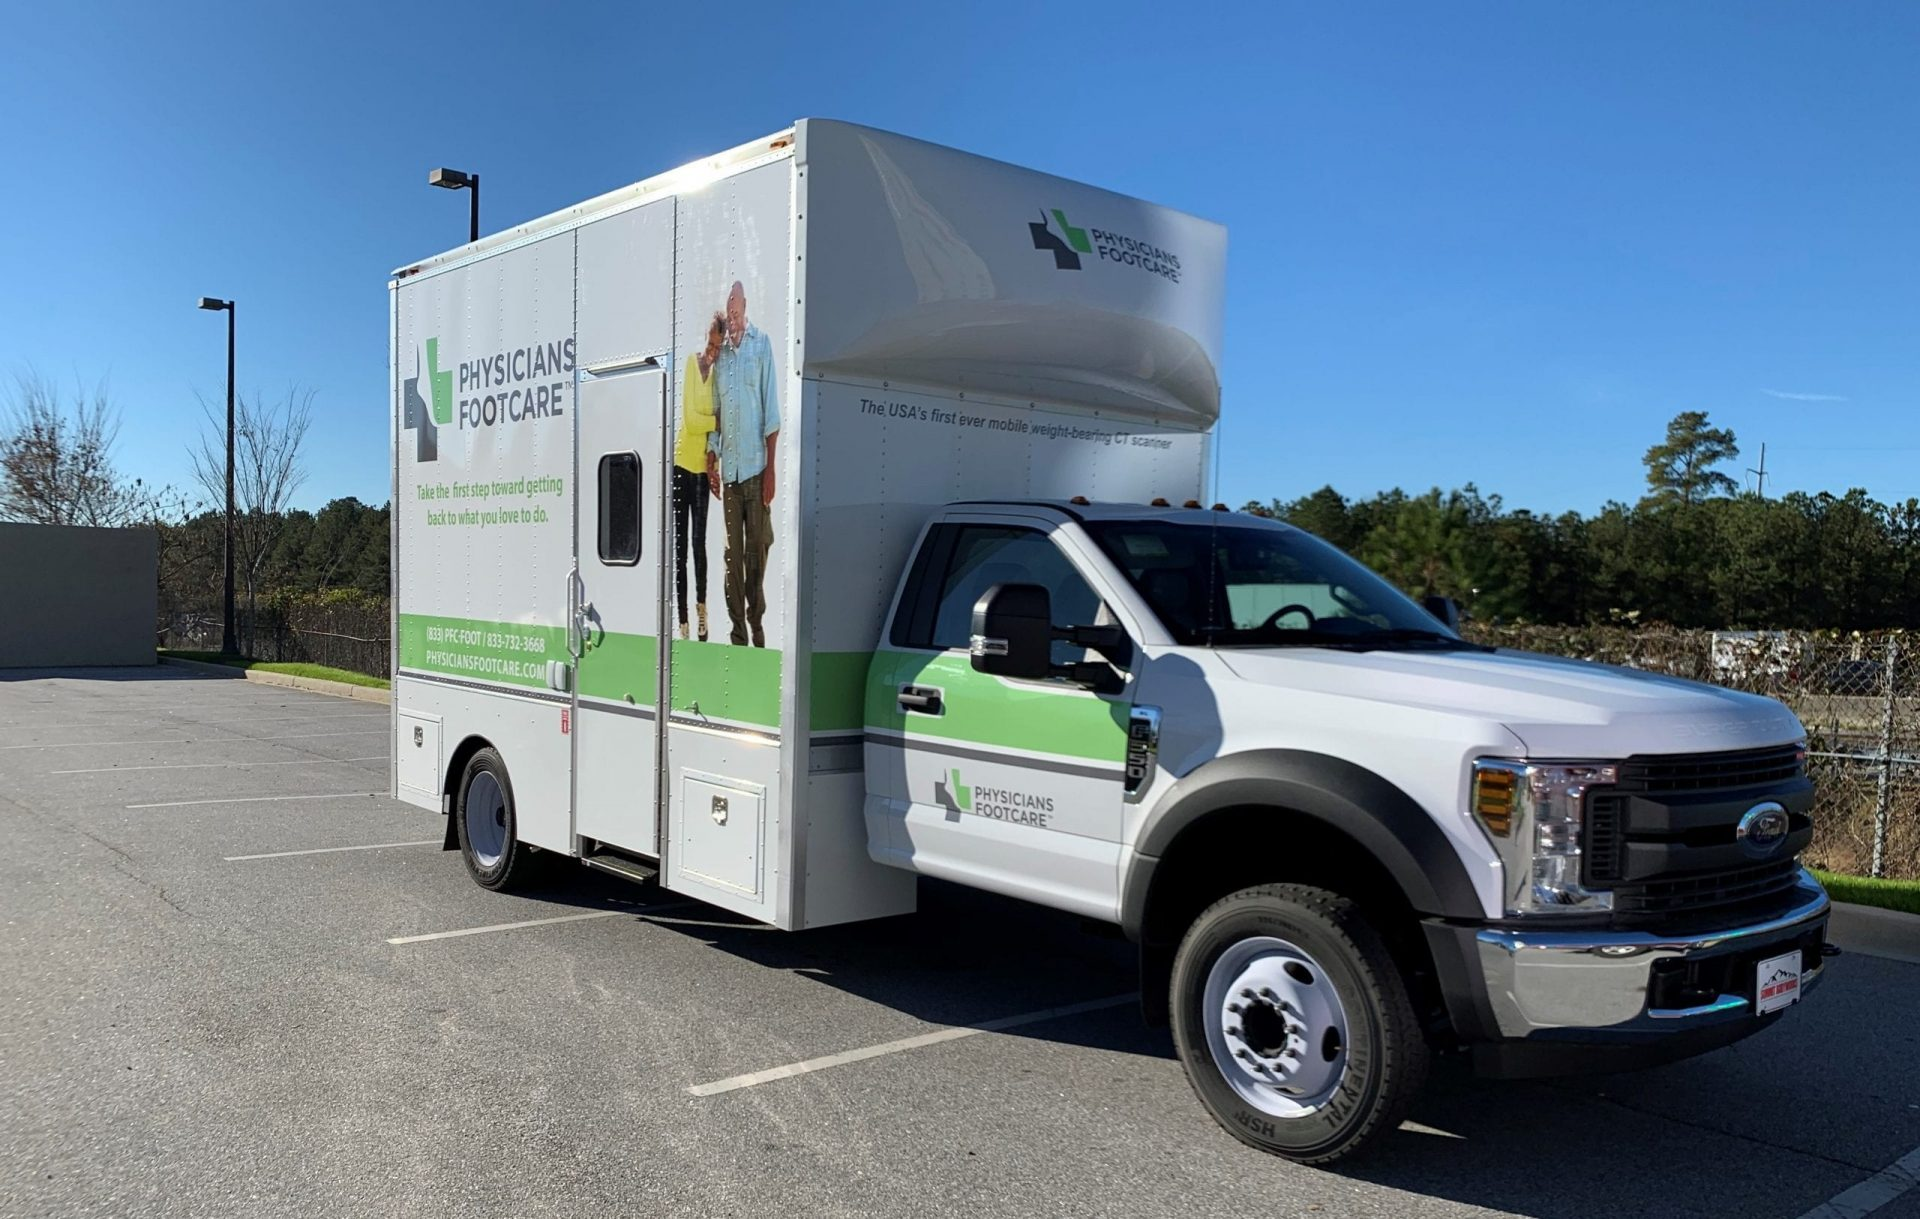 Physicians Footcare And CurveBeam Mobile Hit The Road